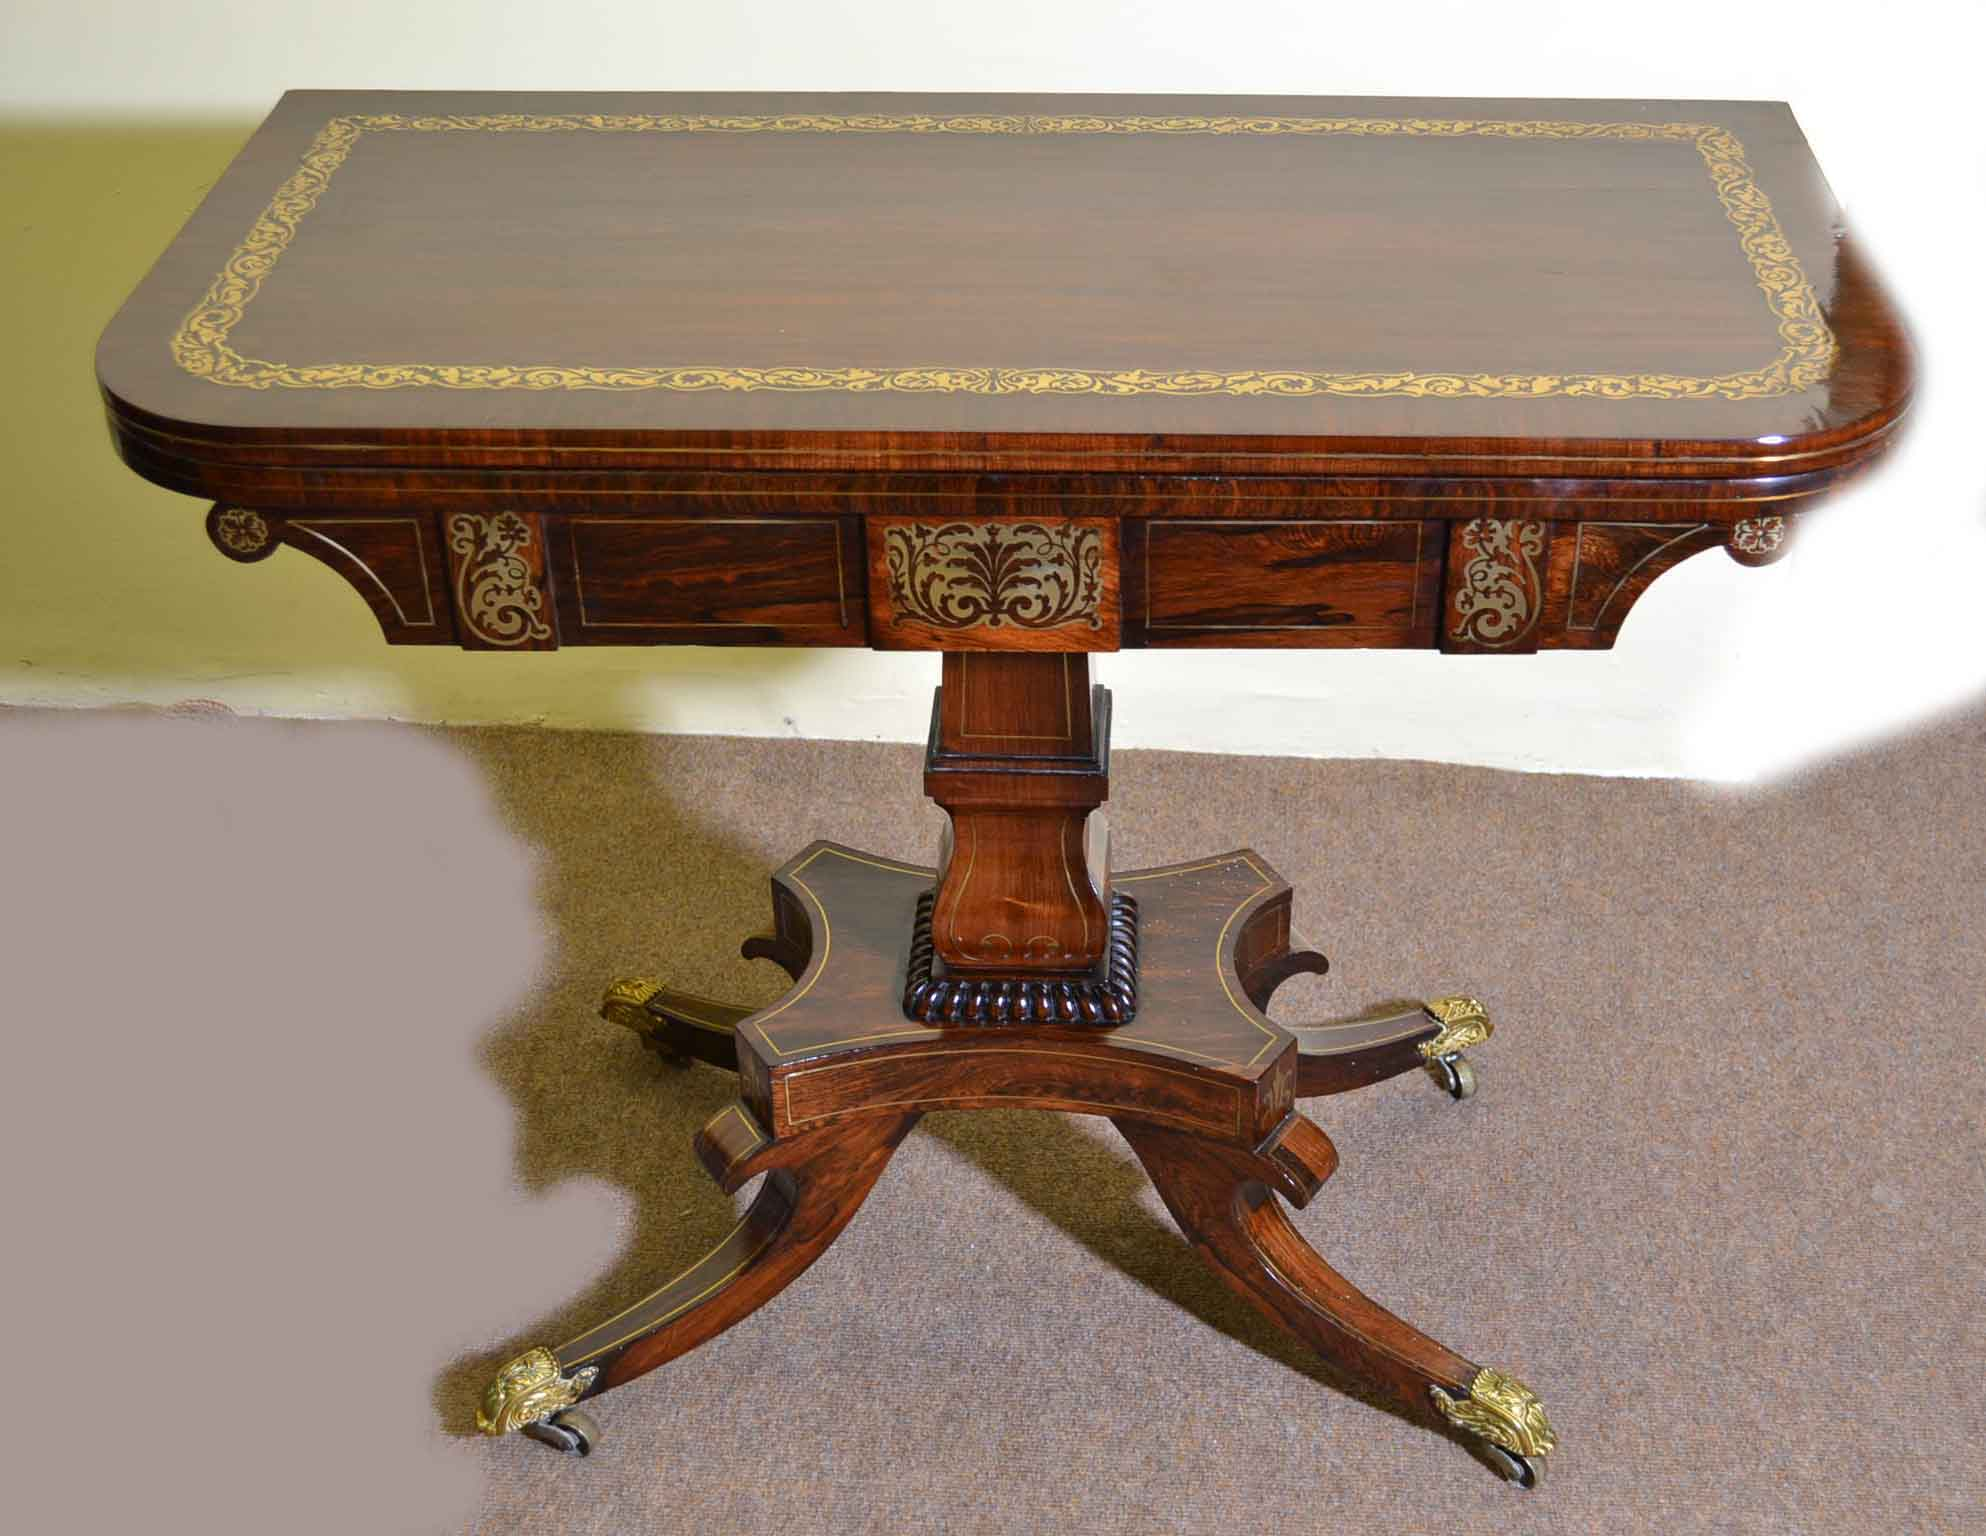 Antique card table regency card table inlaid card table antique - Antique Card Table Regency Card Table Inlaid Card Table Antique 1